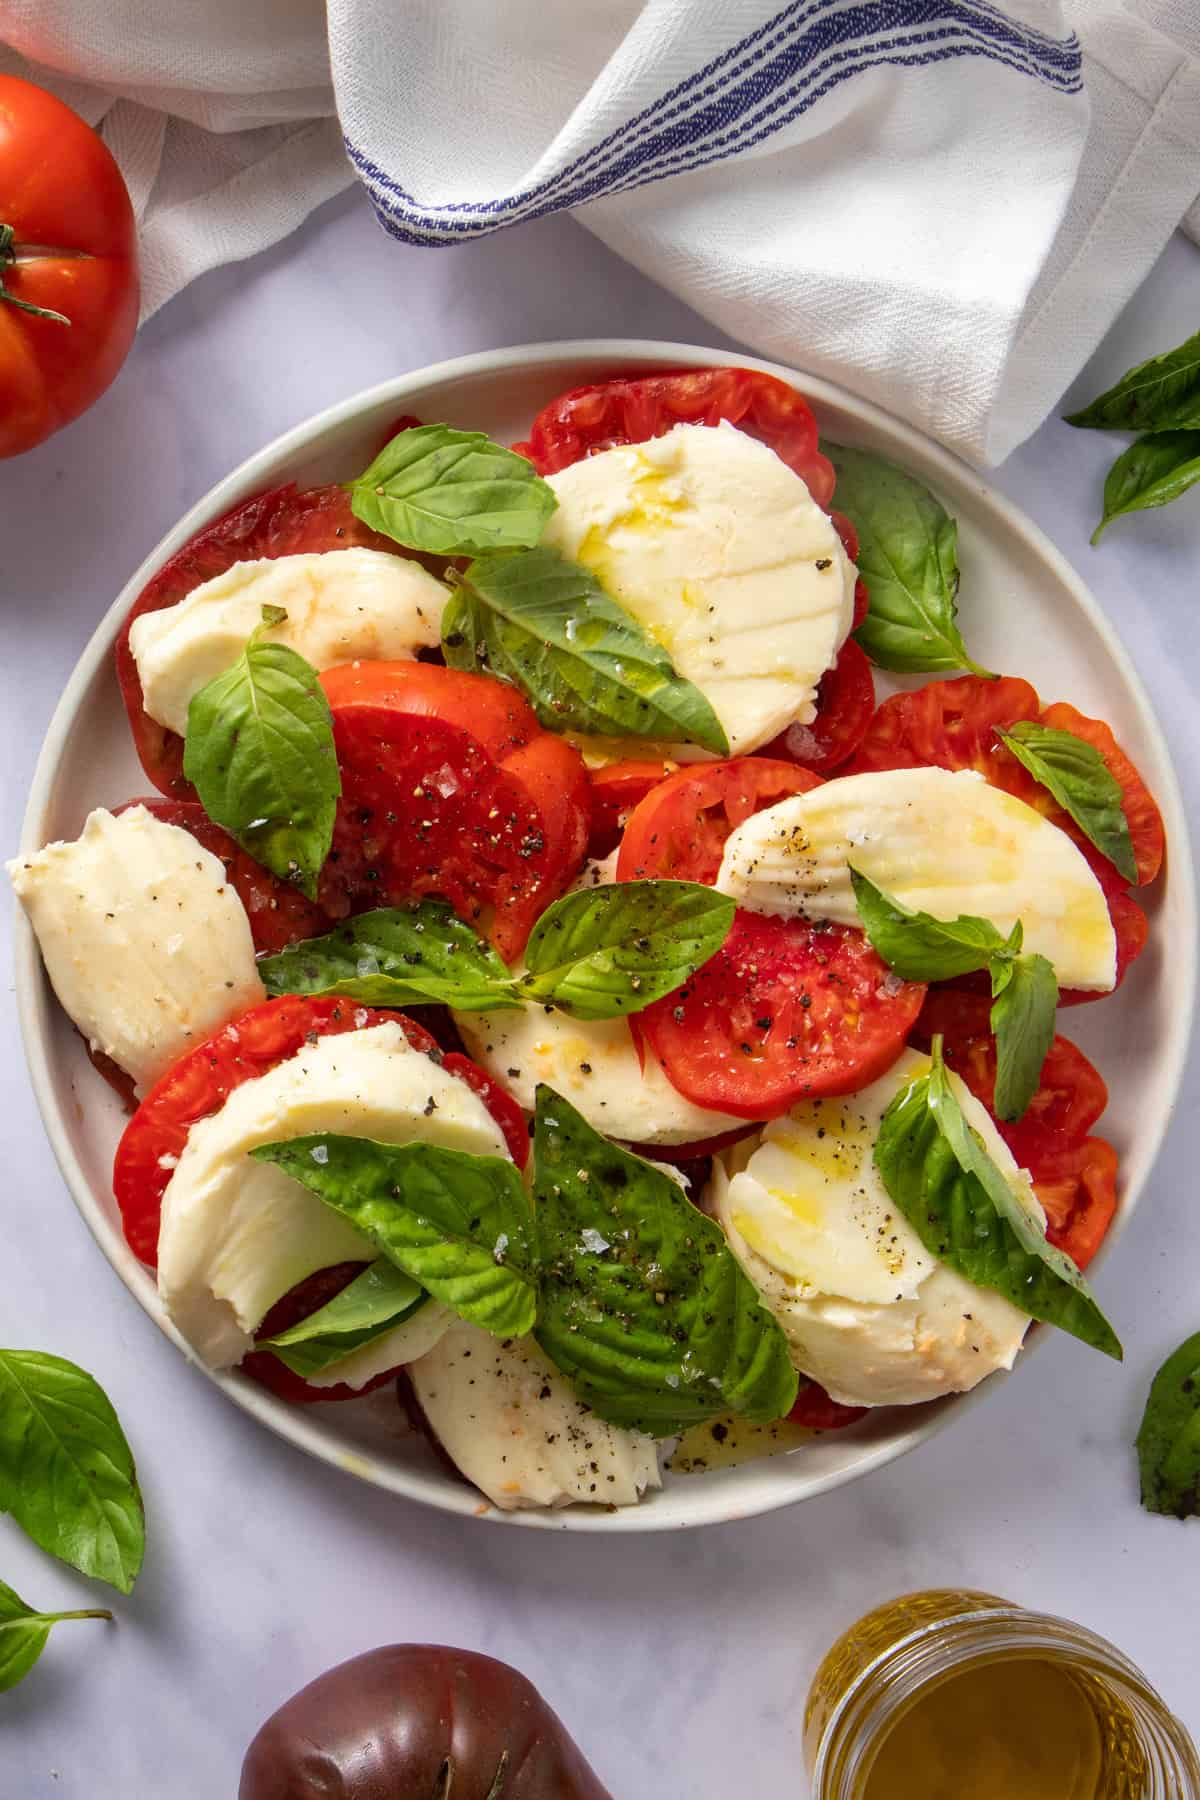 Plate with caprese salad (tomato, mozzarella and basil with olive oil, salt and pepper) as well as some garnishes on the side